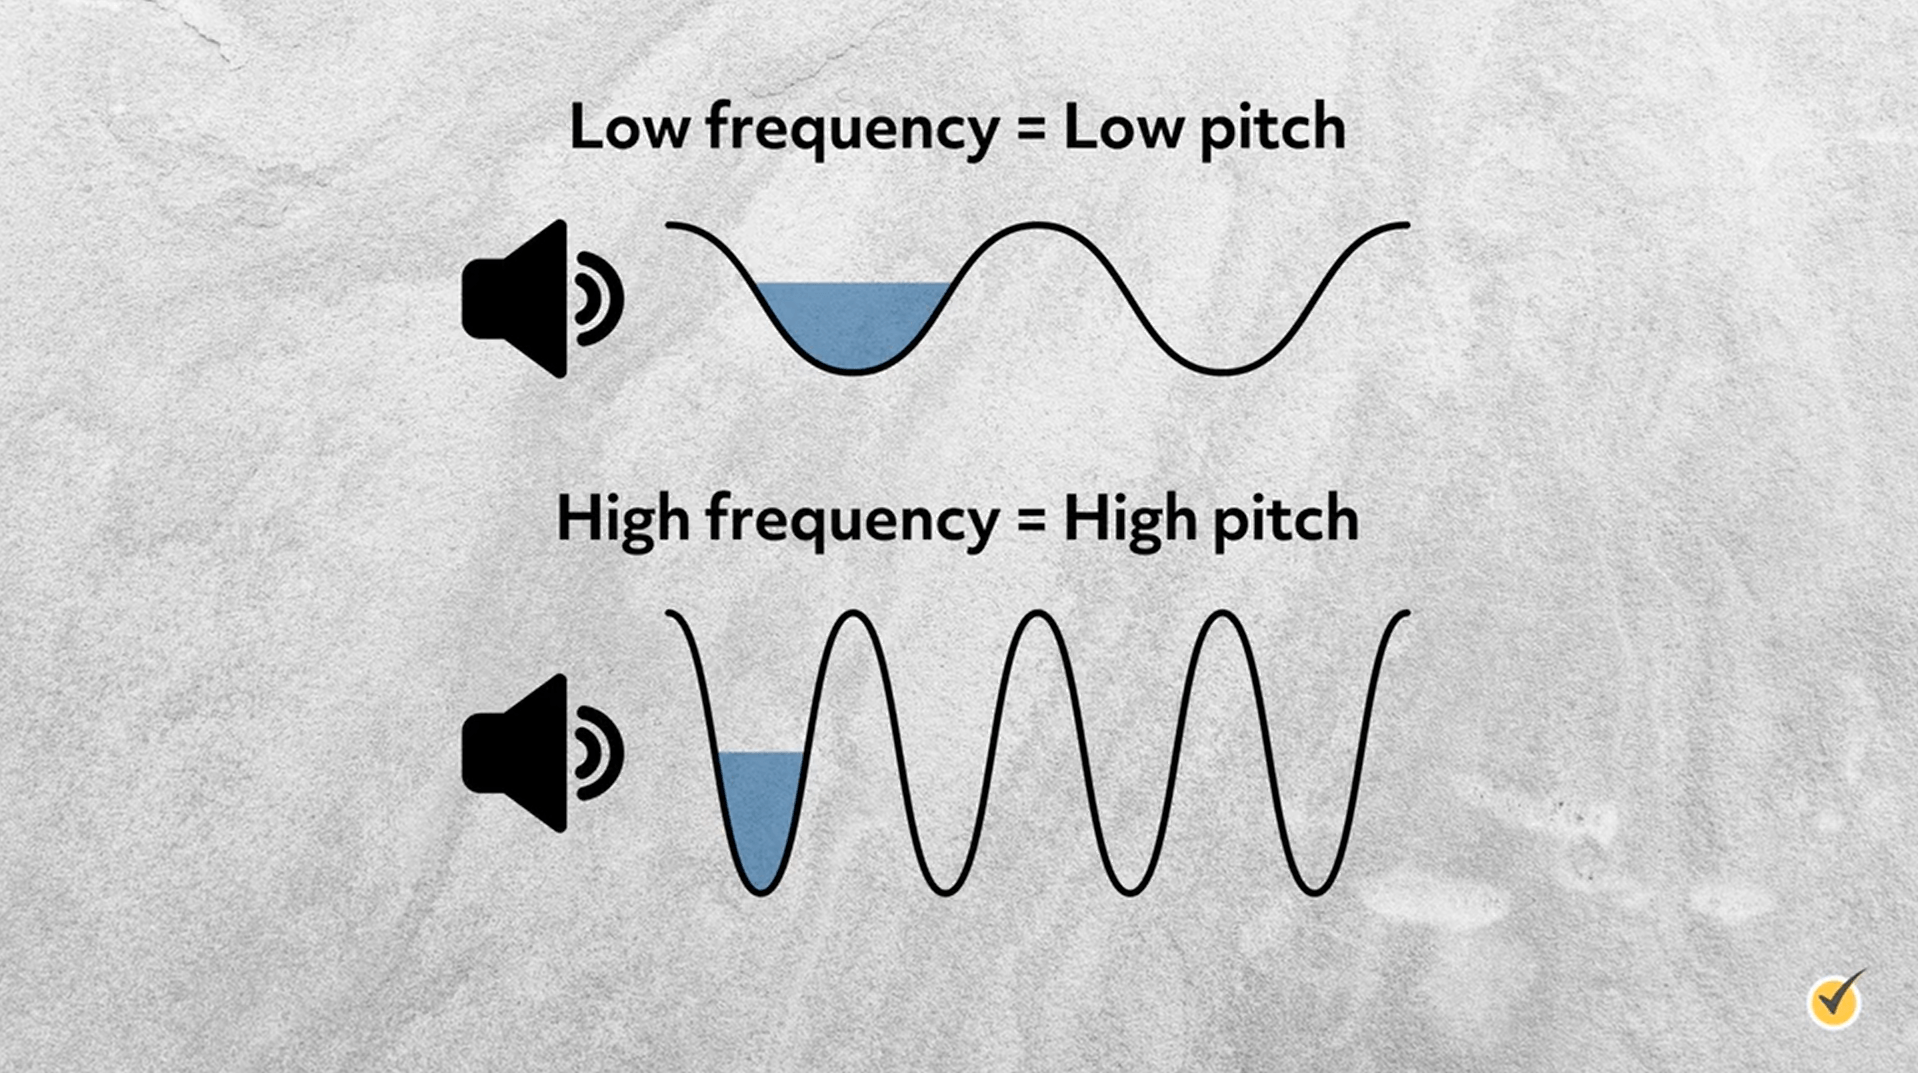 example that low frequency = low pitch, and high frequency = high pitch